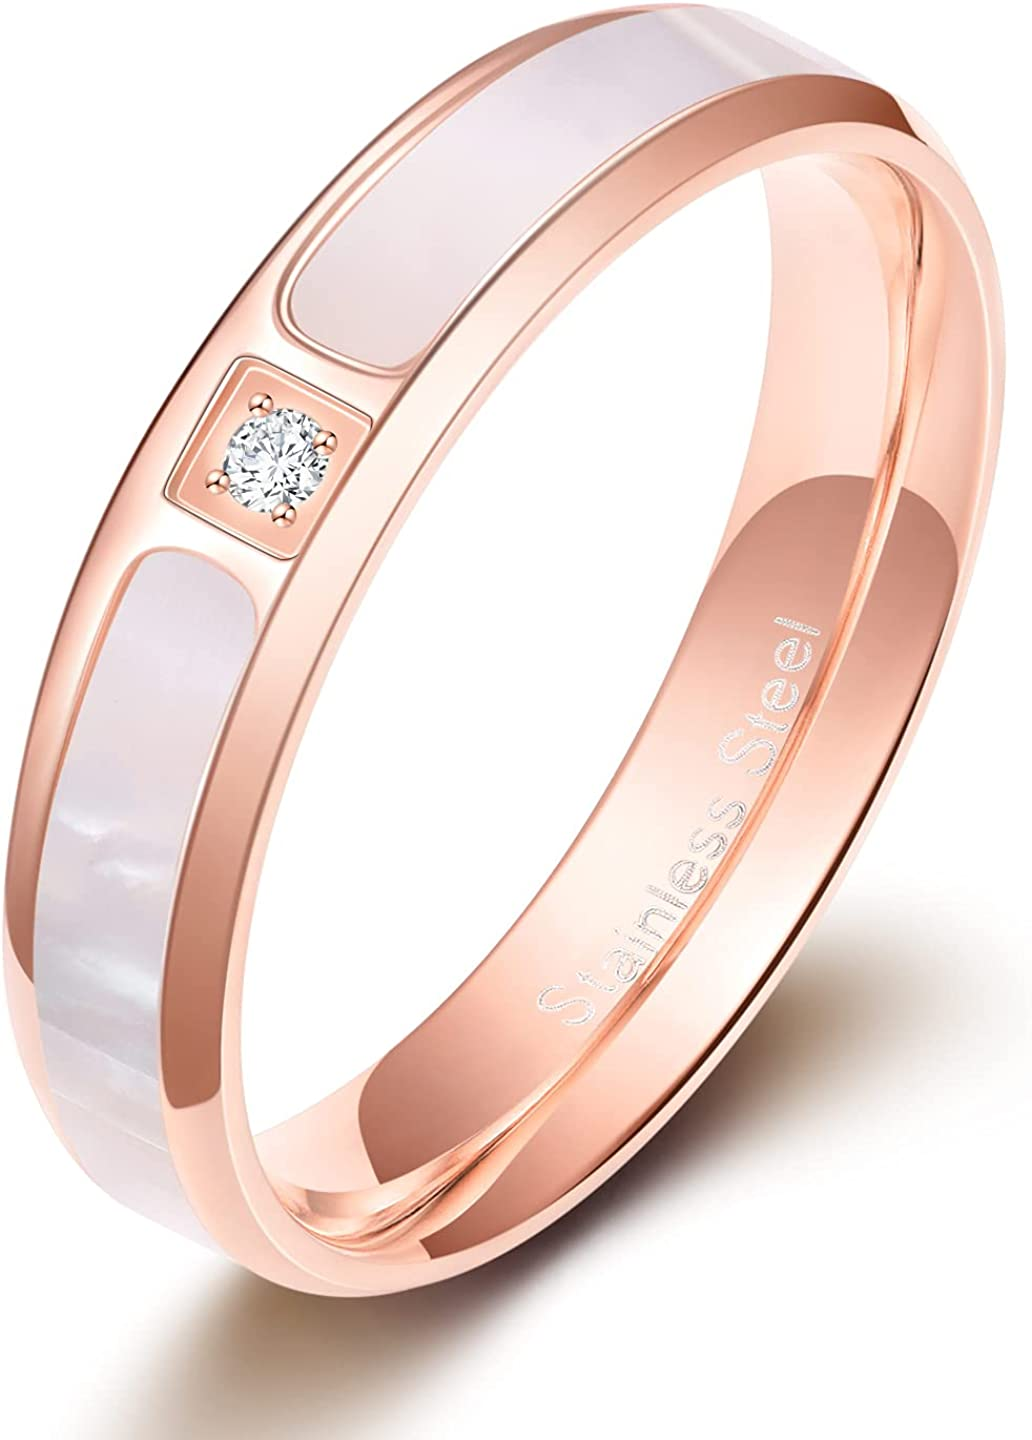 Monkton Women Rose Gold Stainless Steel Wedding Bands with White Shell Inlay Engagement Promise Ring 3.5mm/5.5mm/ 2.5-4mm Corss